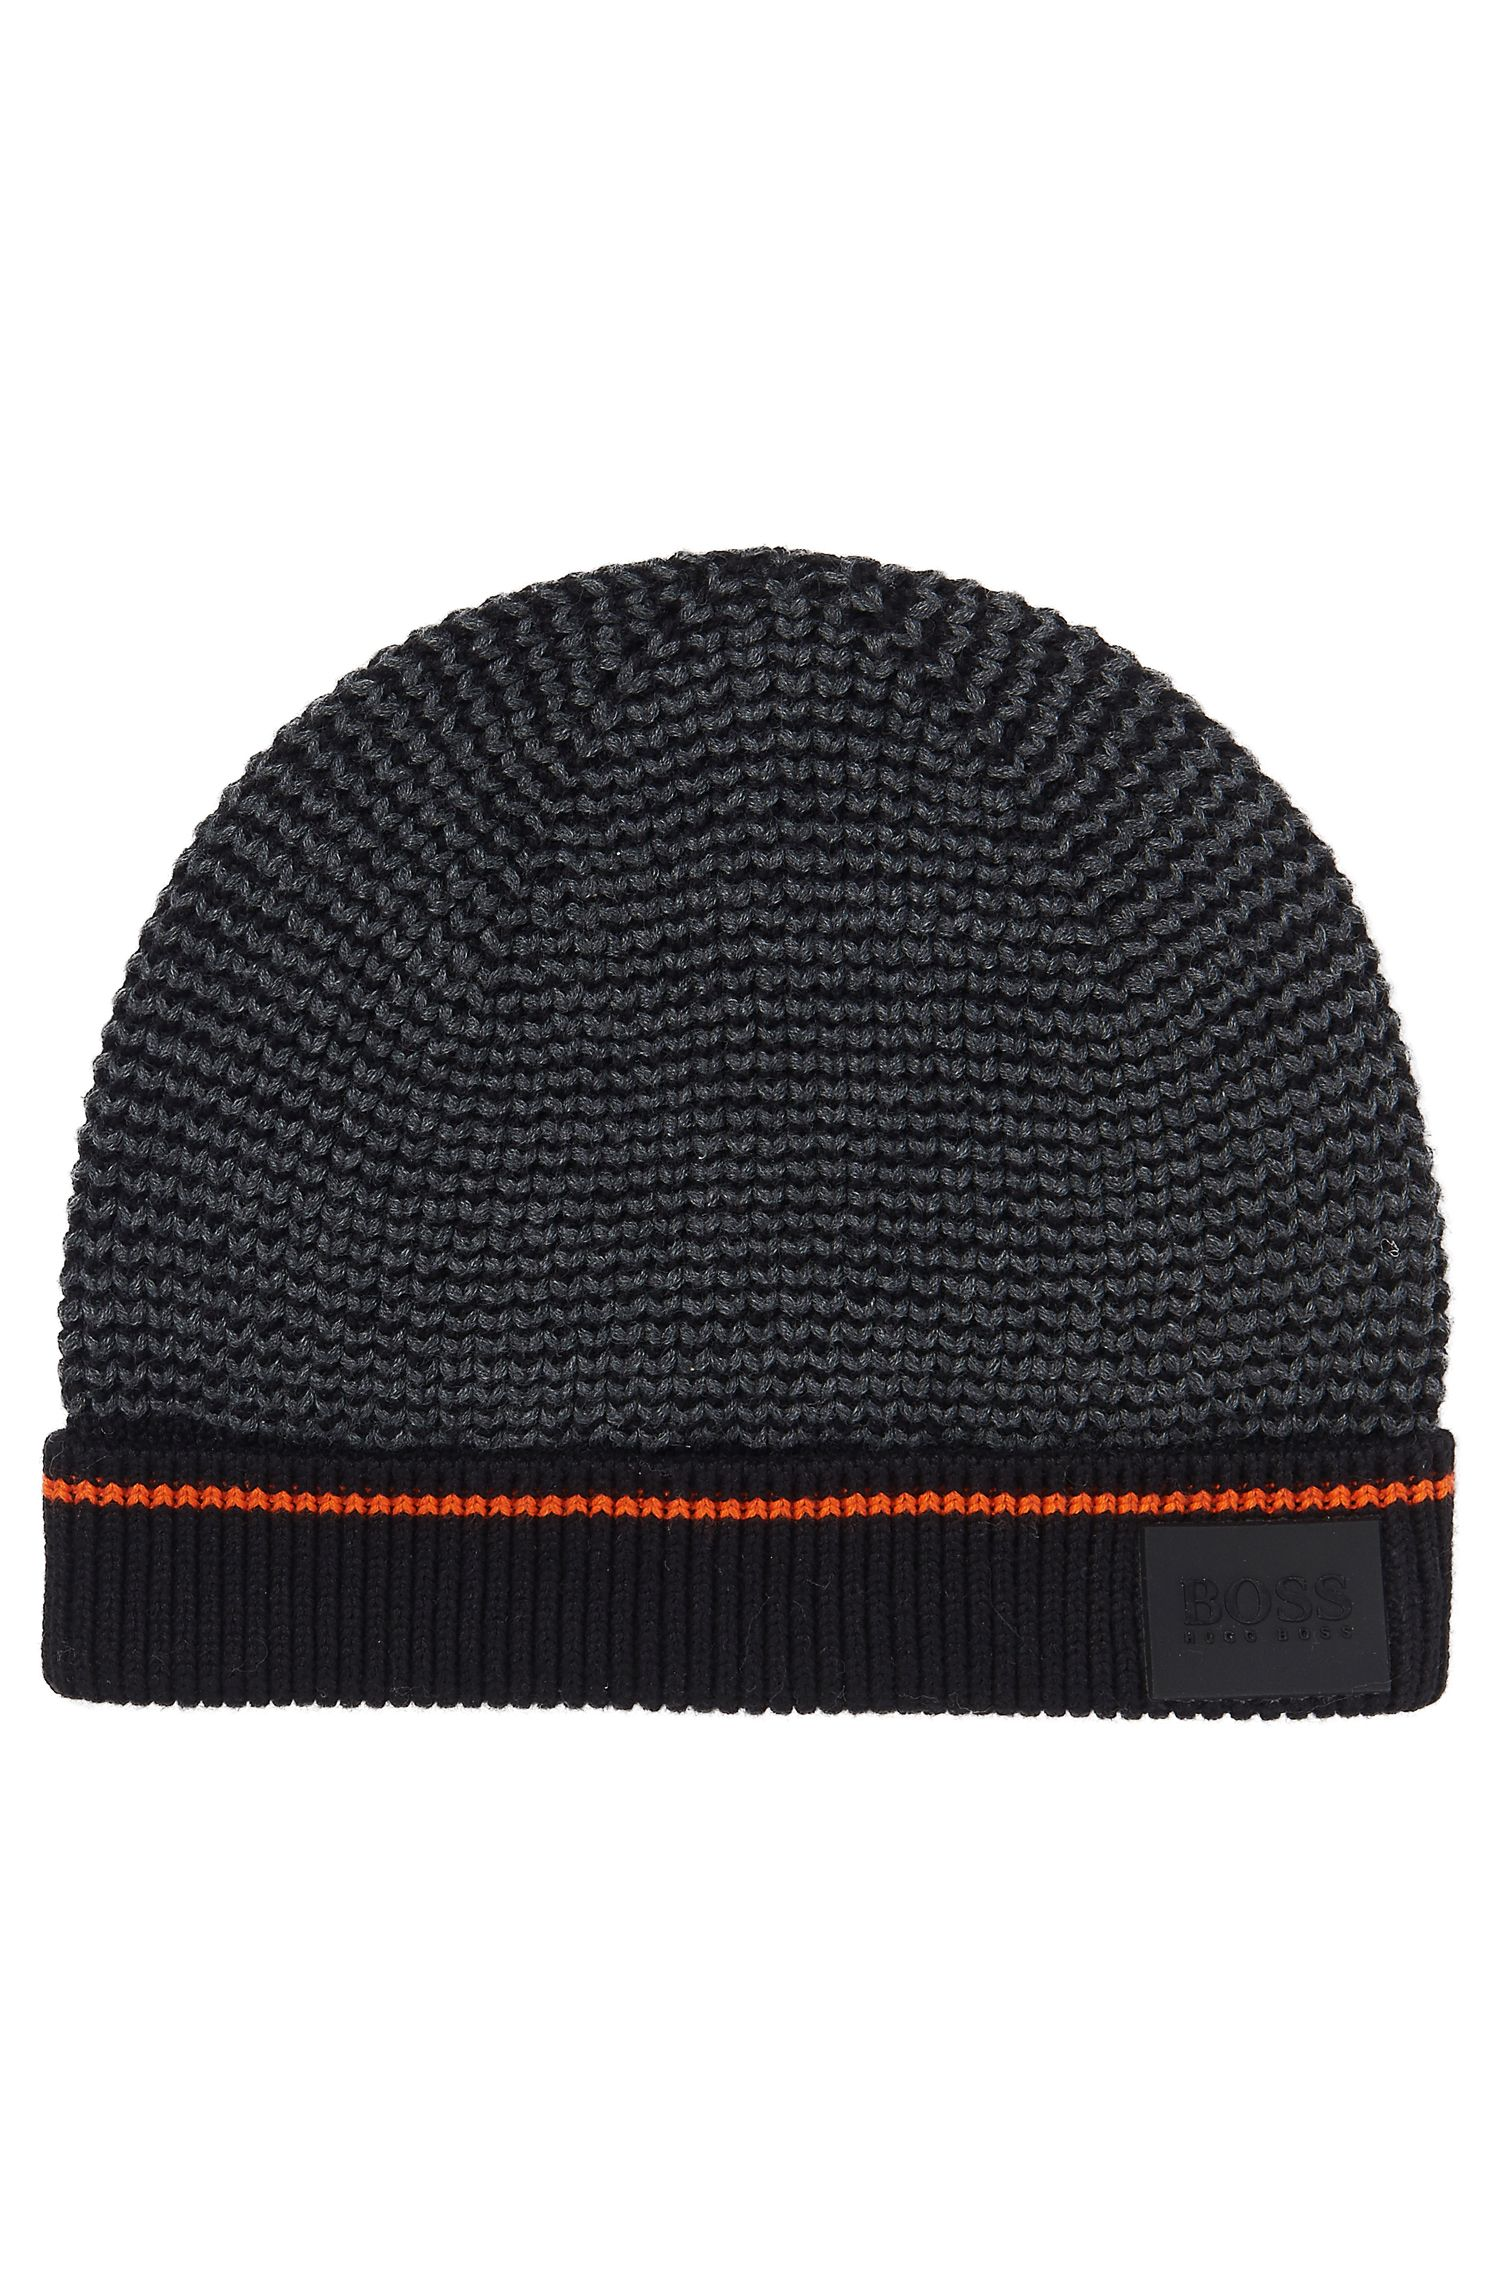 'J21174' | Boys Cotton Knit Beanie